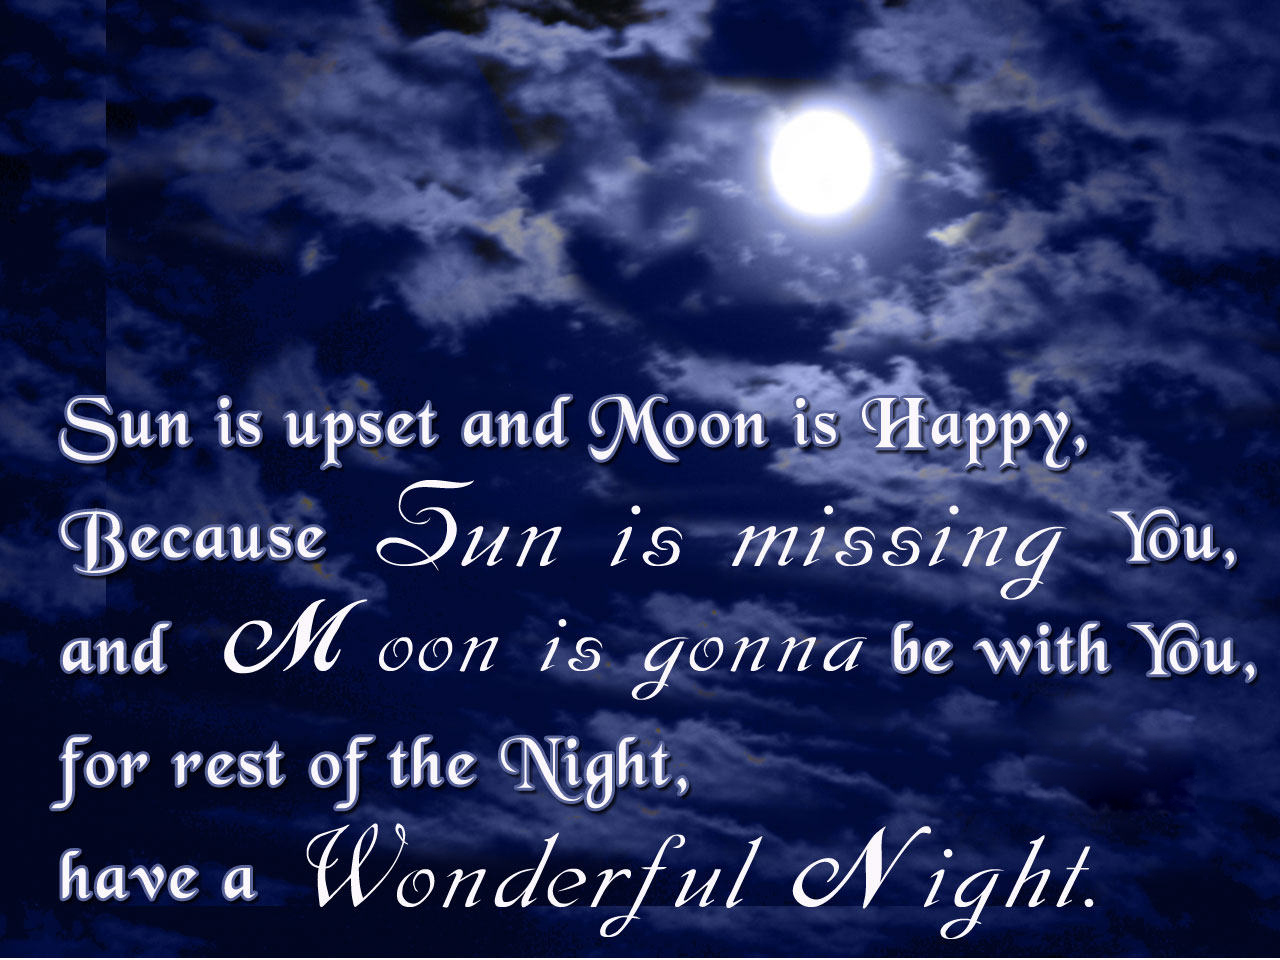 Goodnight Quotes - Good Night Pic With Quotes - HD Wallpaper